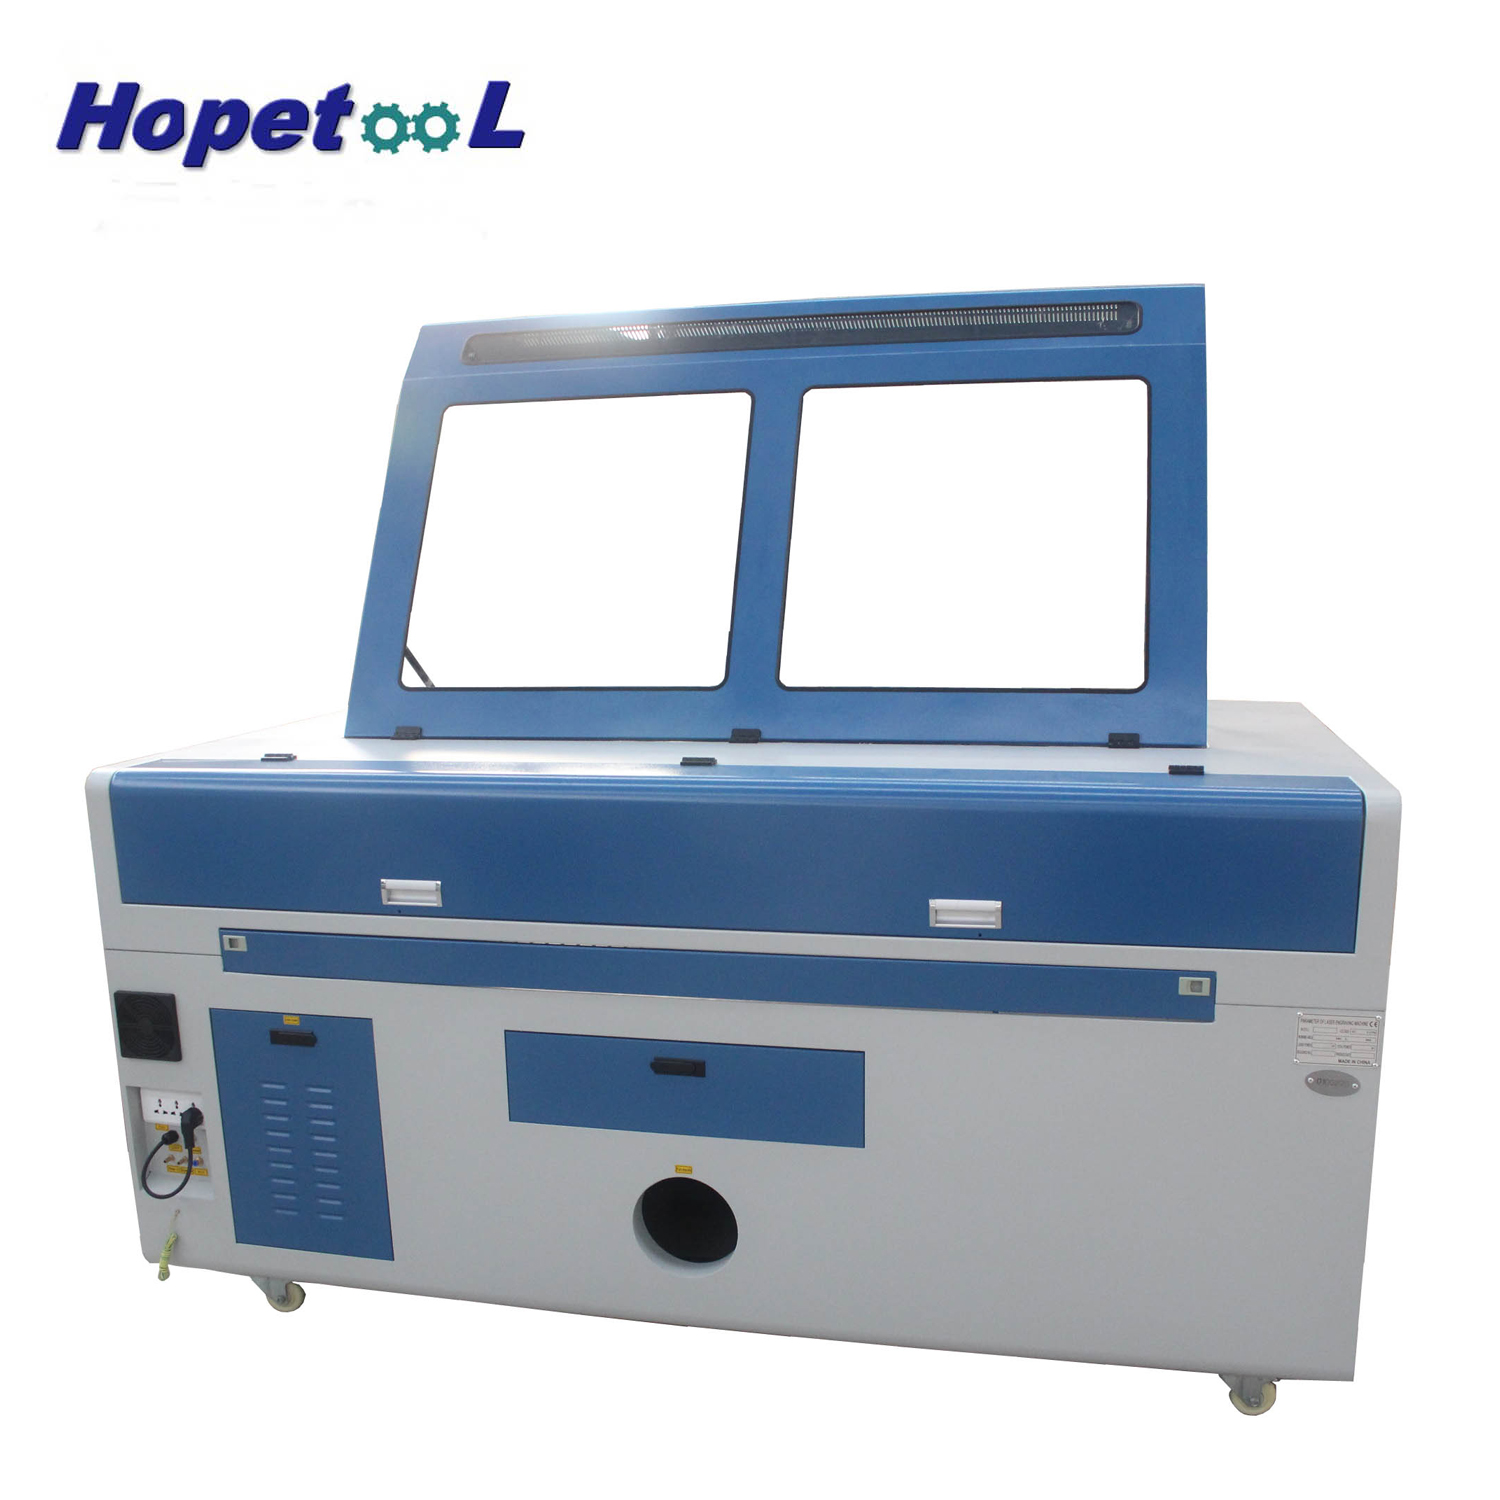 3 axis laser cutting 1610 with up-down table precision laser engraving machine